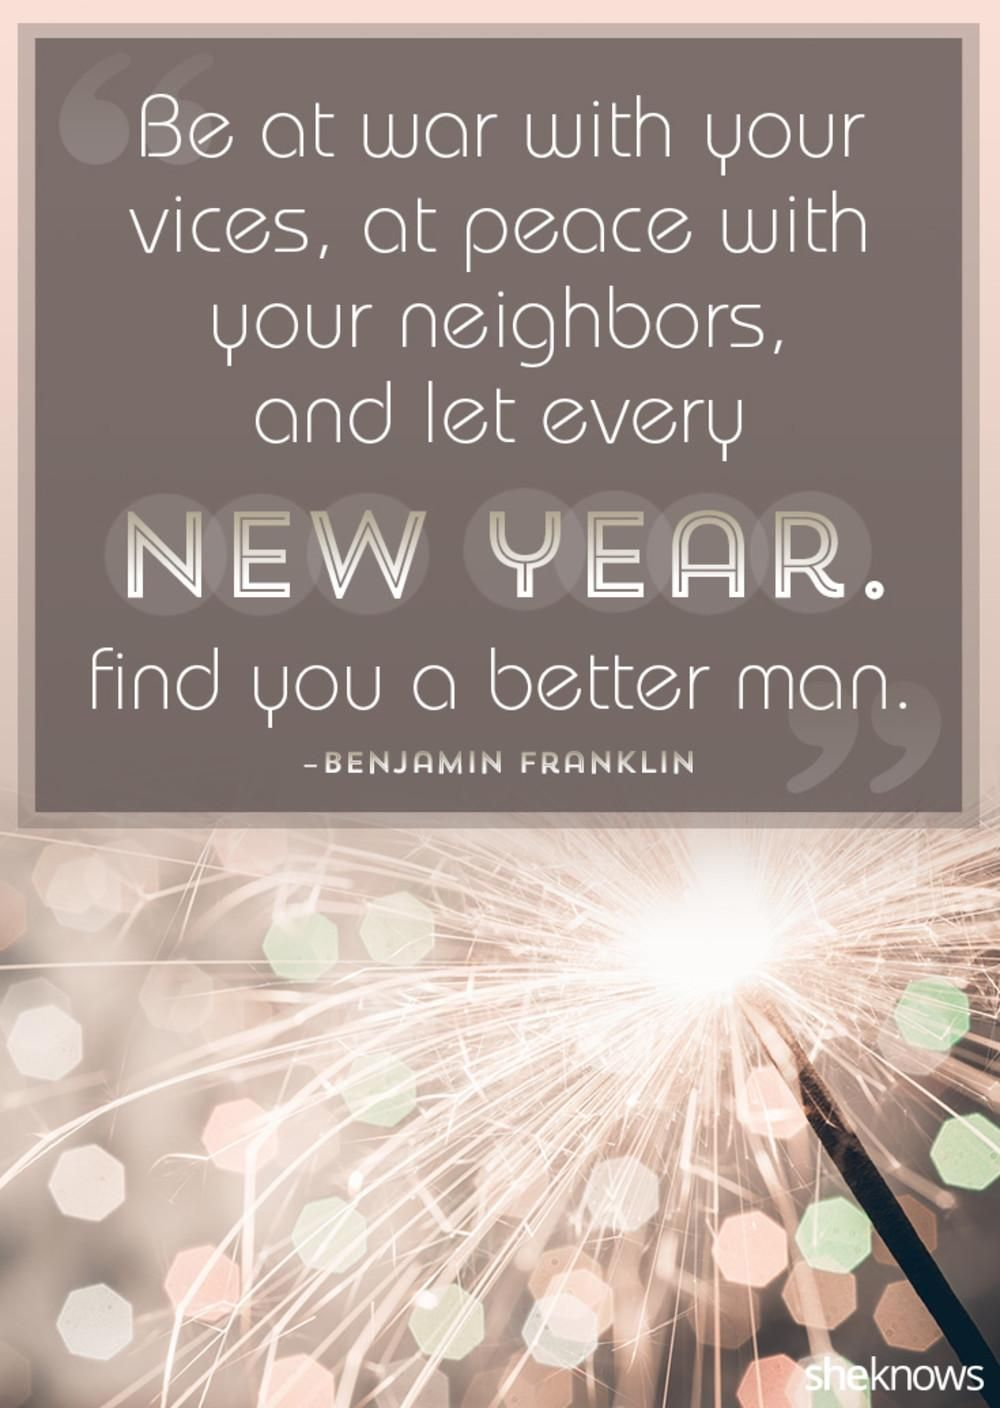 10 Quotes To Ring In The New Year Right 10th Quotes Quotes About New Year New Years Eve Quotes